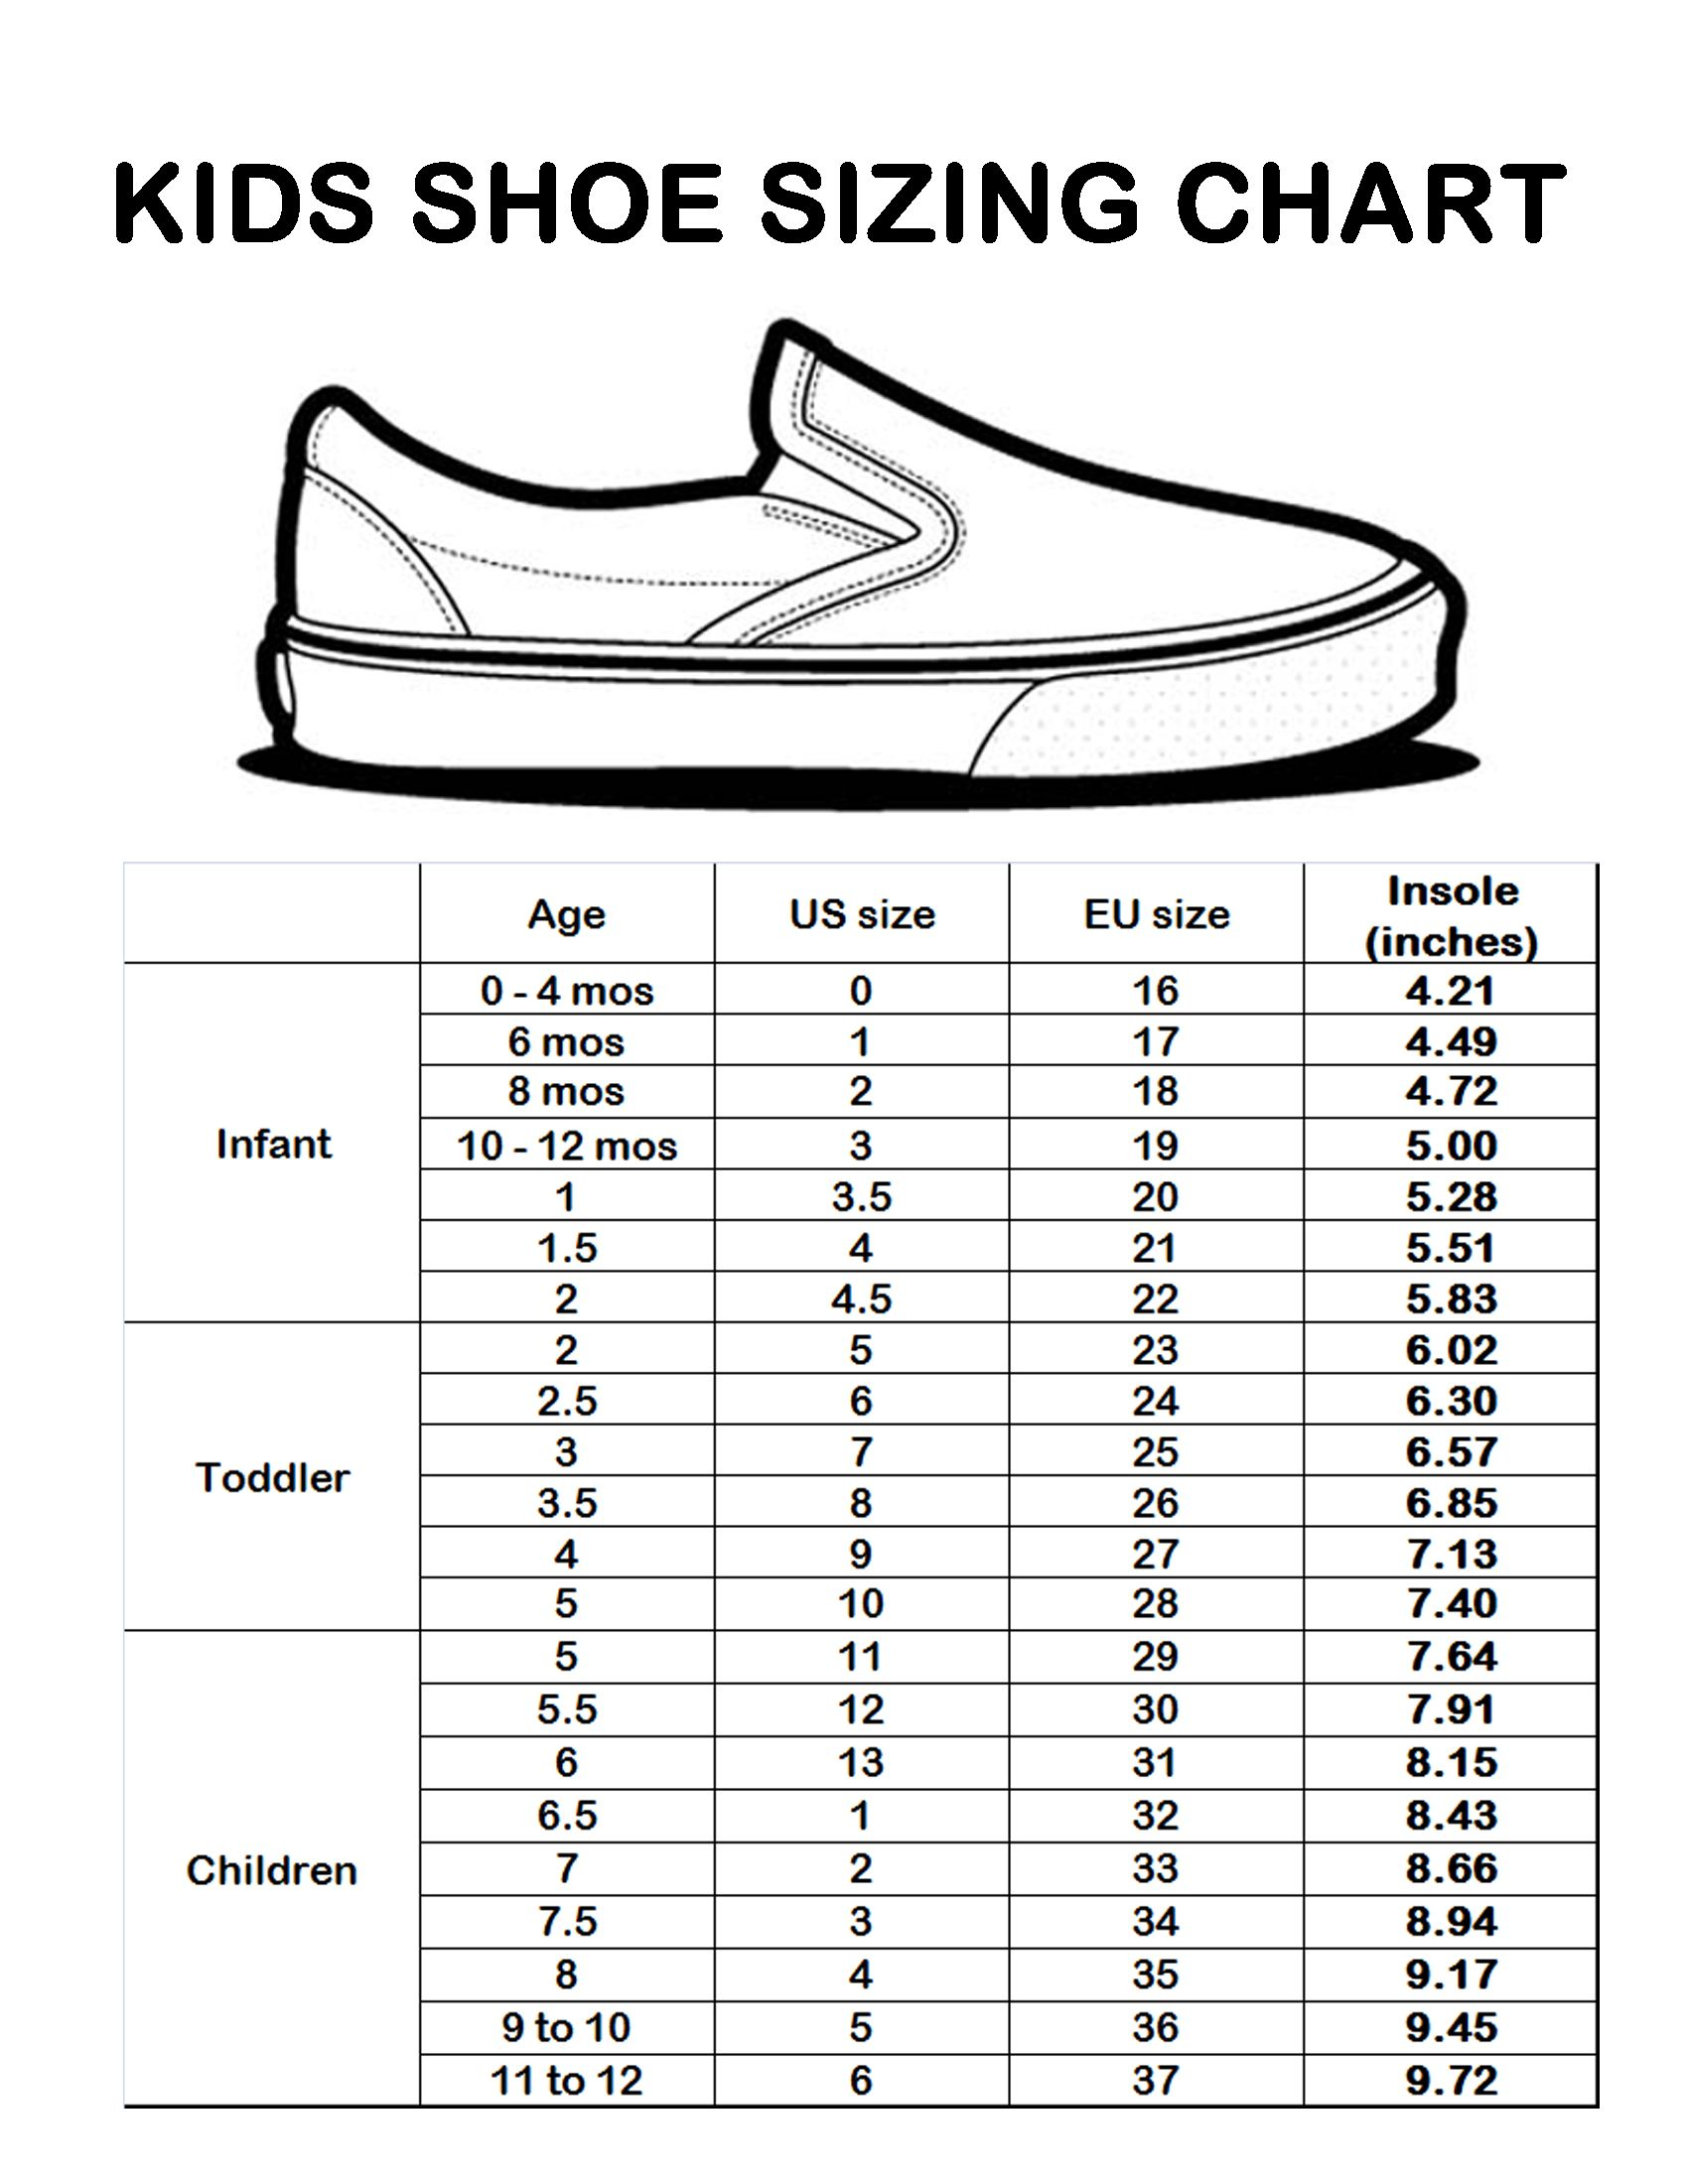 fafd639f7e Another shoe size chart for the kids. Although the age won't match ...